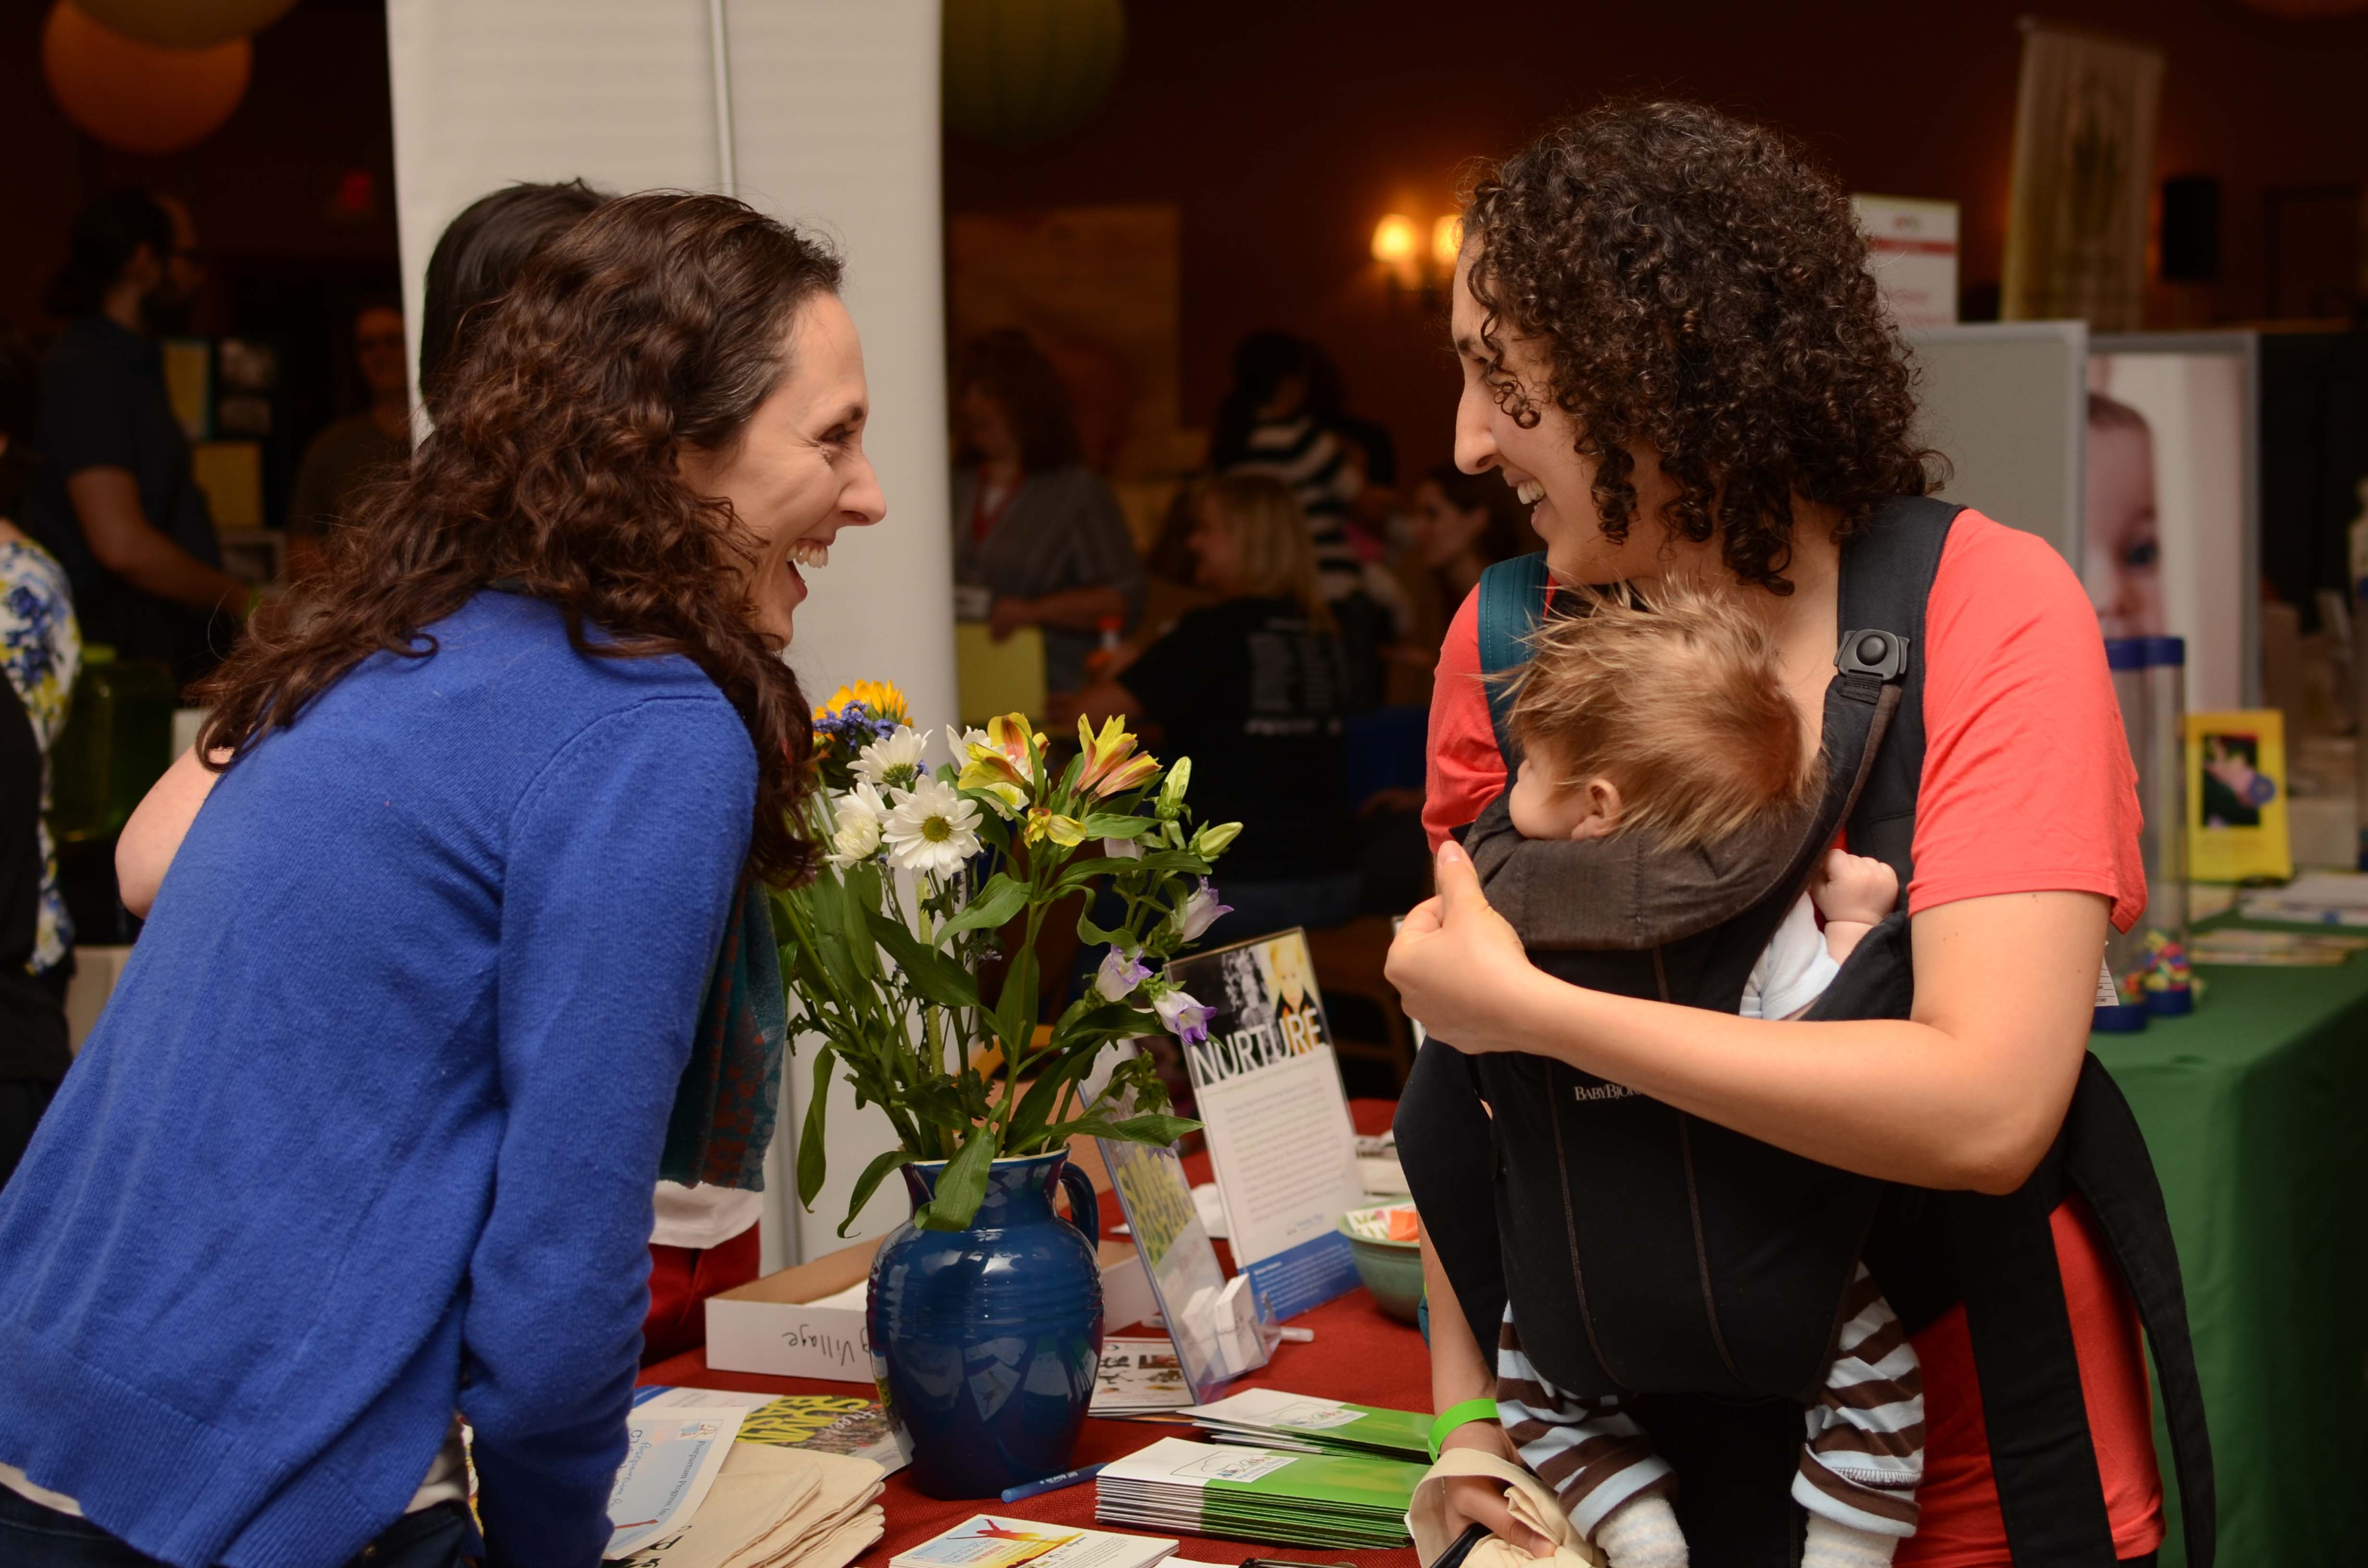 Emily Horowitz, left, from Parenting Village in Rochester, has been among the exhibitors at Beyond the Bump programs in that city. Beyond the Bump comes to Buffalo Saturday for the first time.